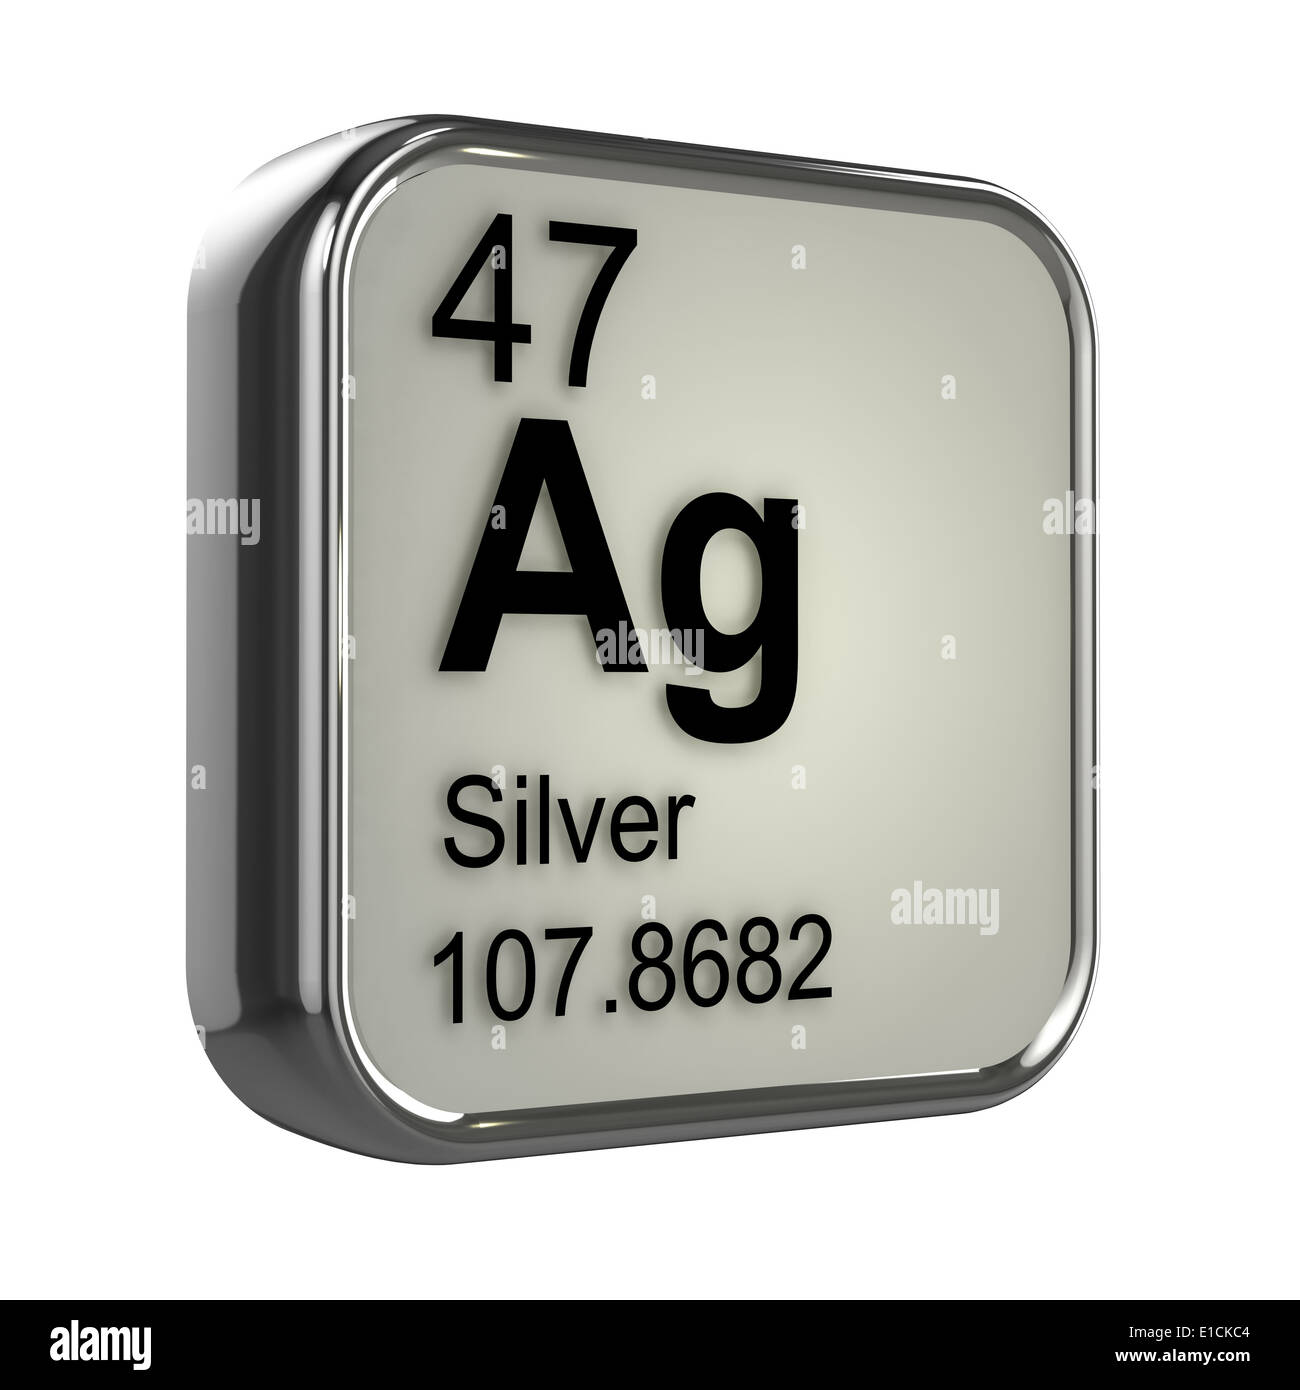 3d periodic table design for silver stock photo royalty free 3d periodic table design for silver gamestrikefo Image collections